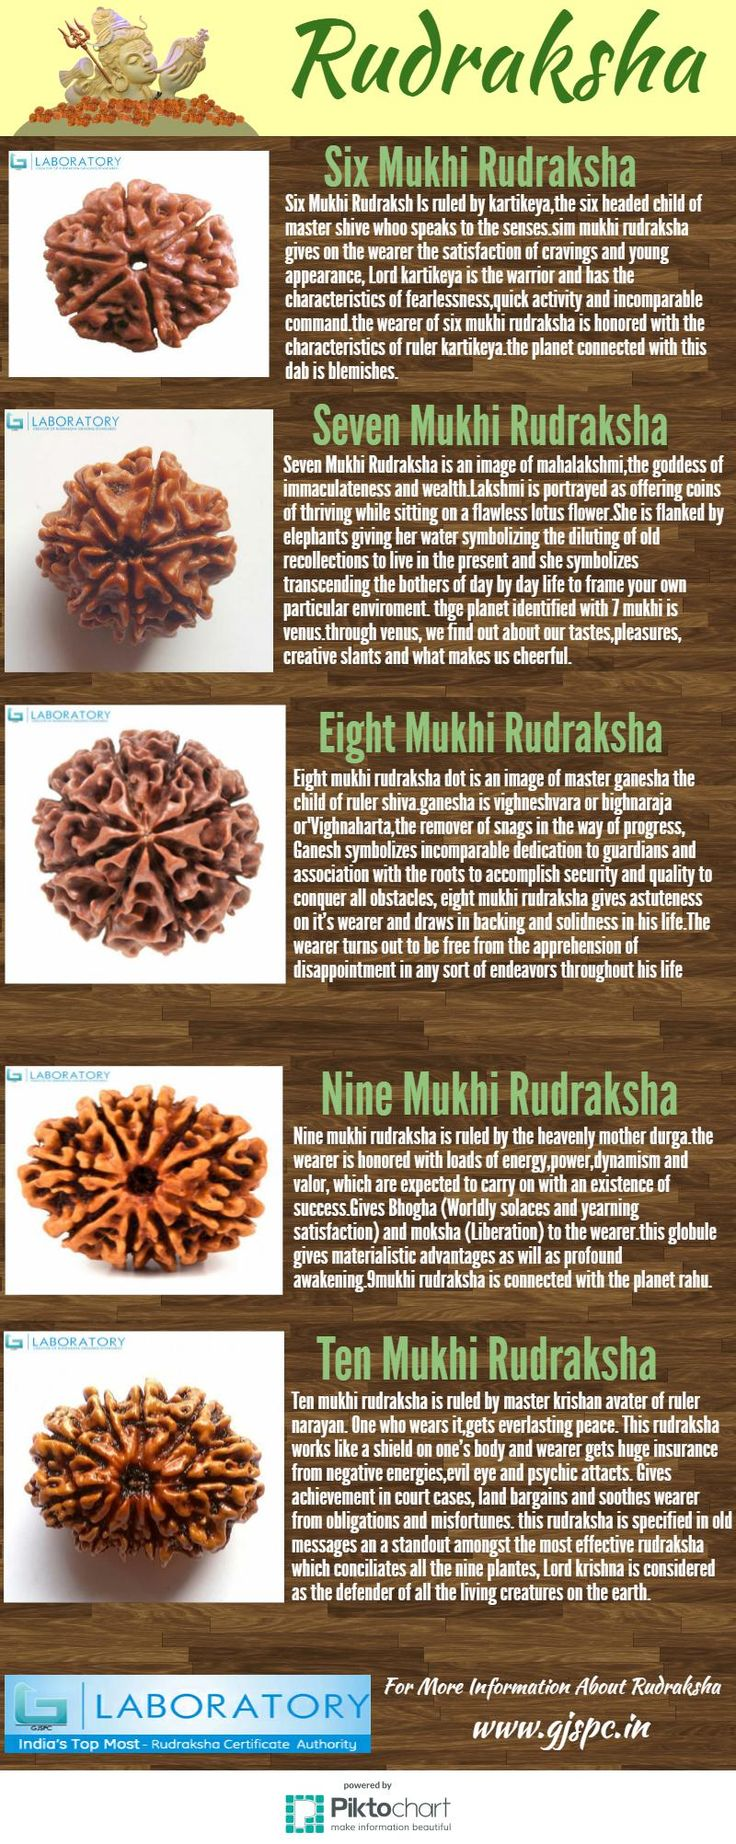 Rudraksha is a characteristic seed of the blue product of the evergreen tree Elaeocarpus ganitrus,indigenous to the Himalayas and found in Nepal, India and different parts of Southeast Asia.